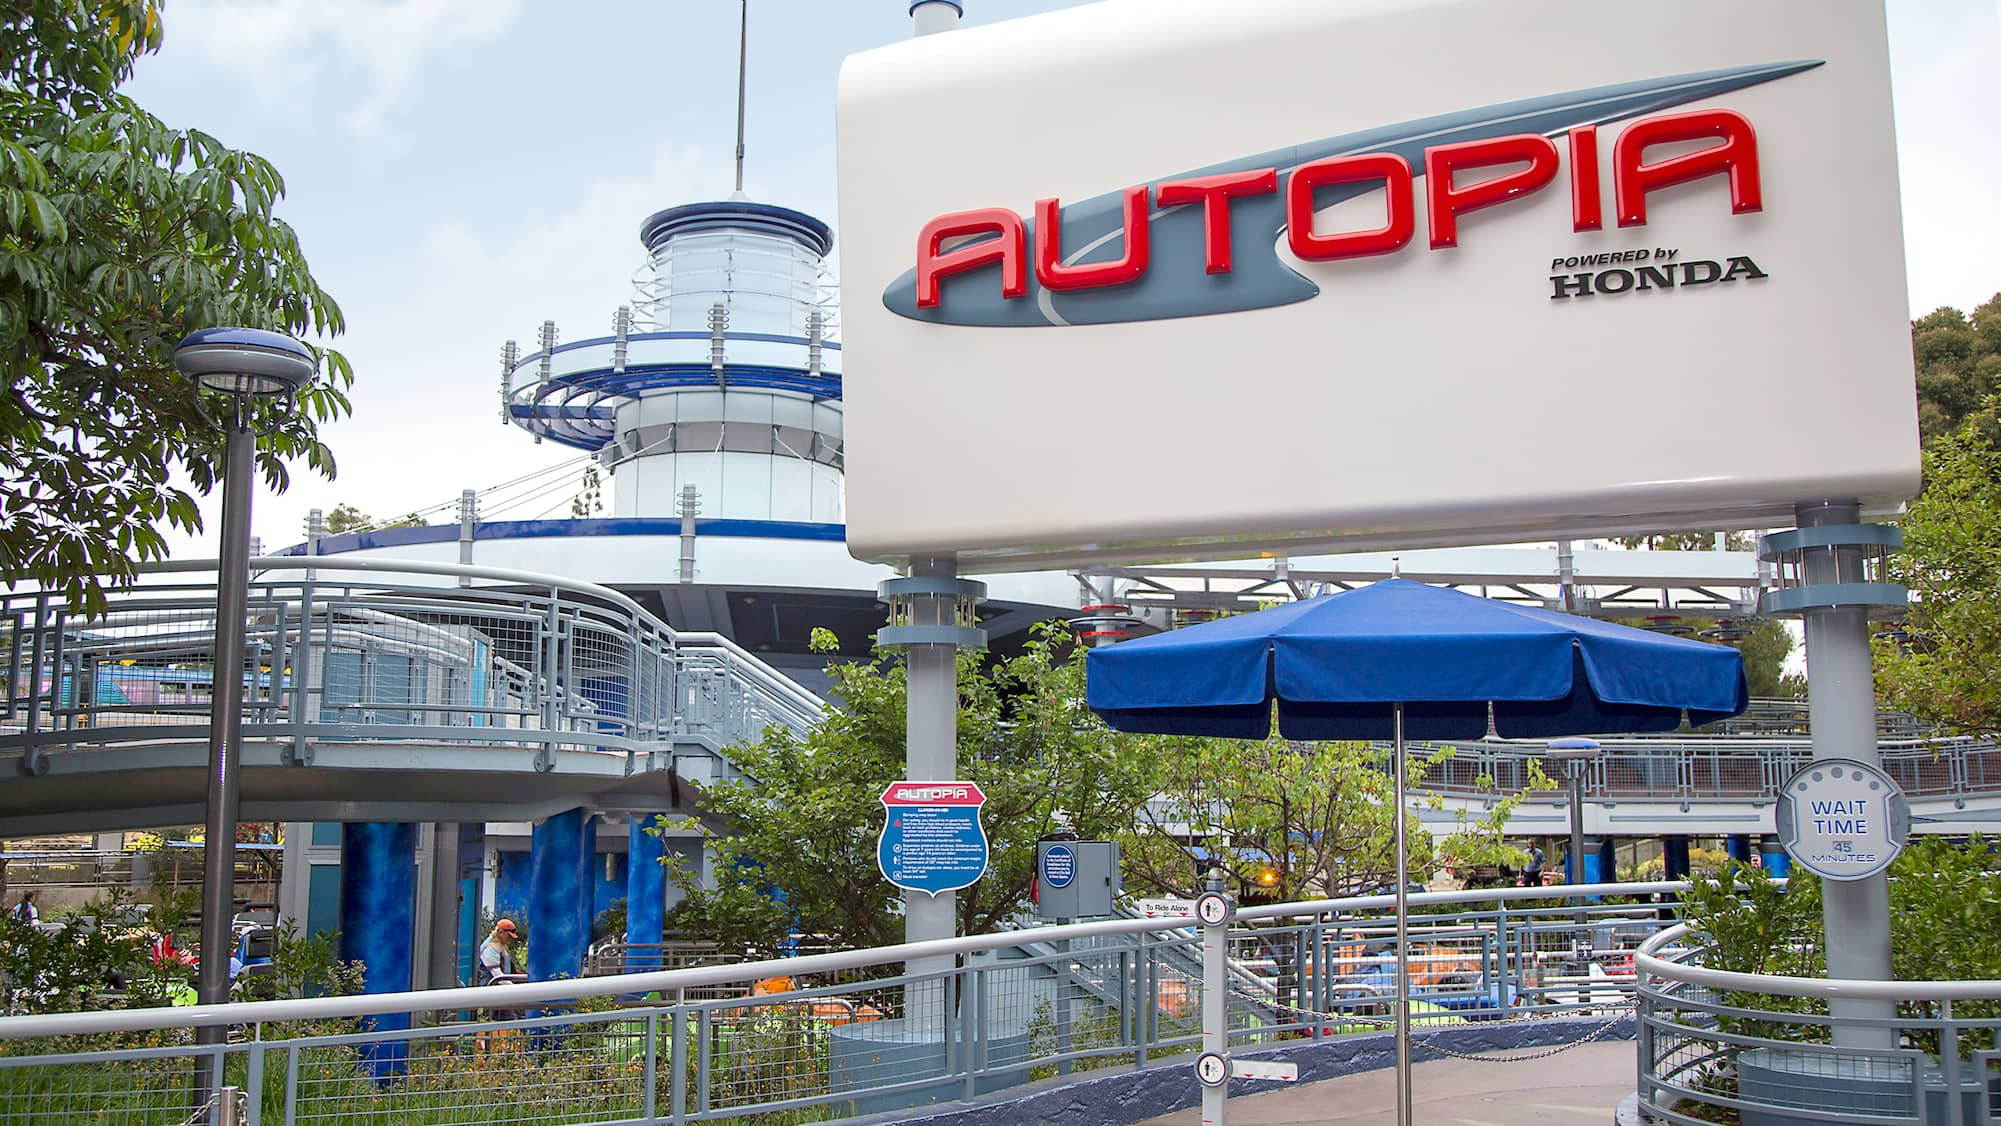 The new, Honda sponsored Autopia sign stands over the entrance of this iconic attraction